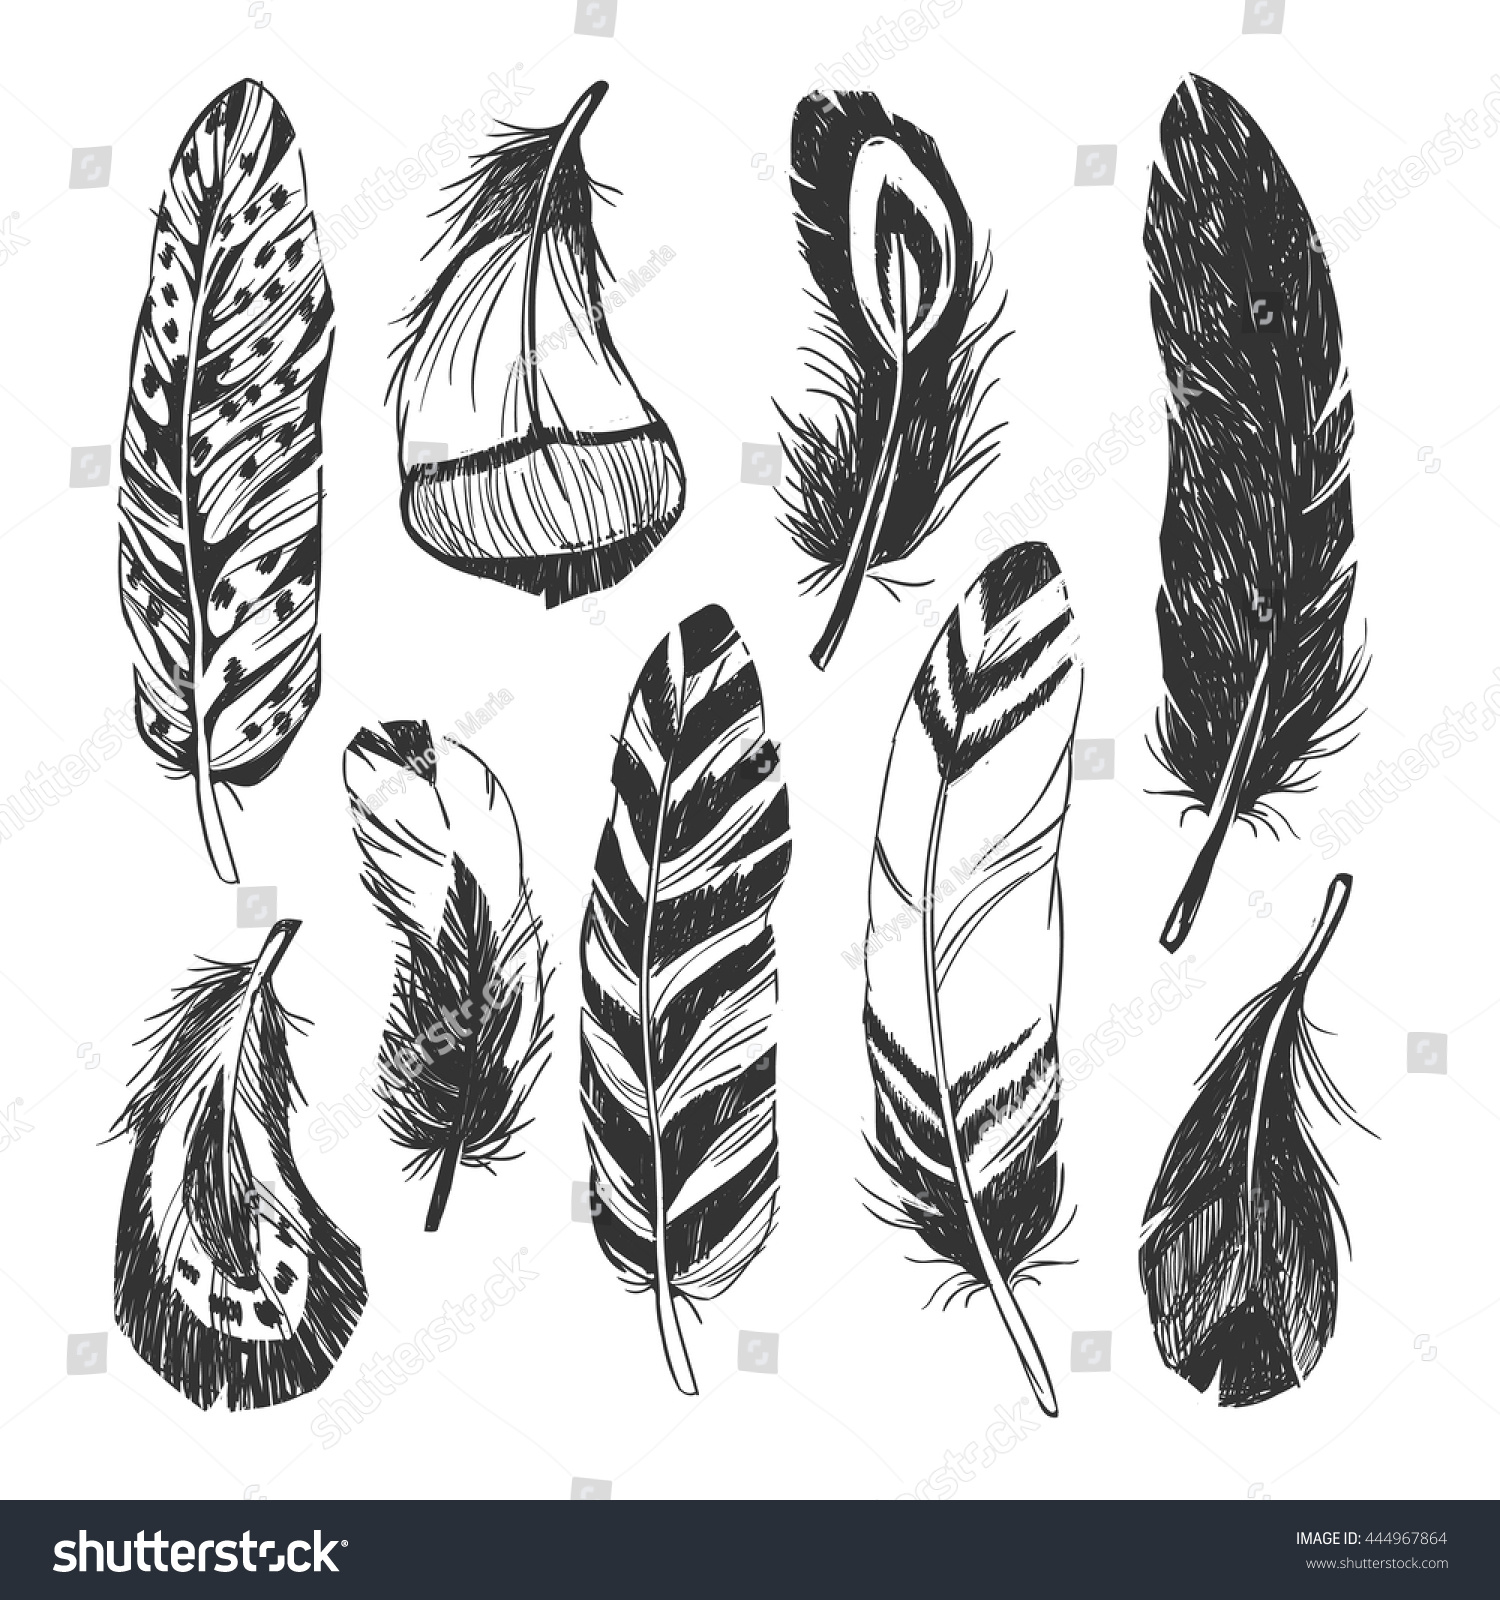 The hipster coloring book for adults - Feather Set In Native American Indian Style Vector Hand Drawn Hipster Illustration Isolated On White